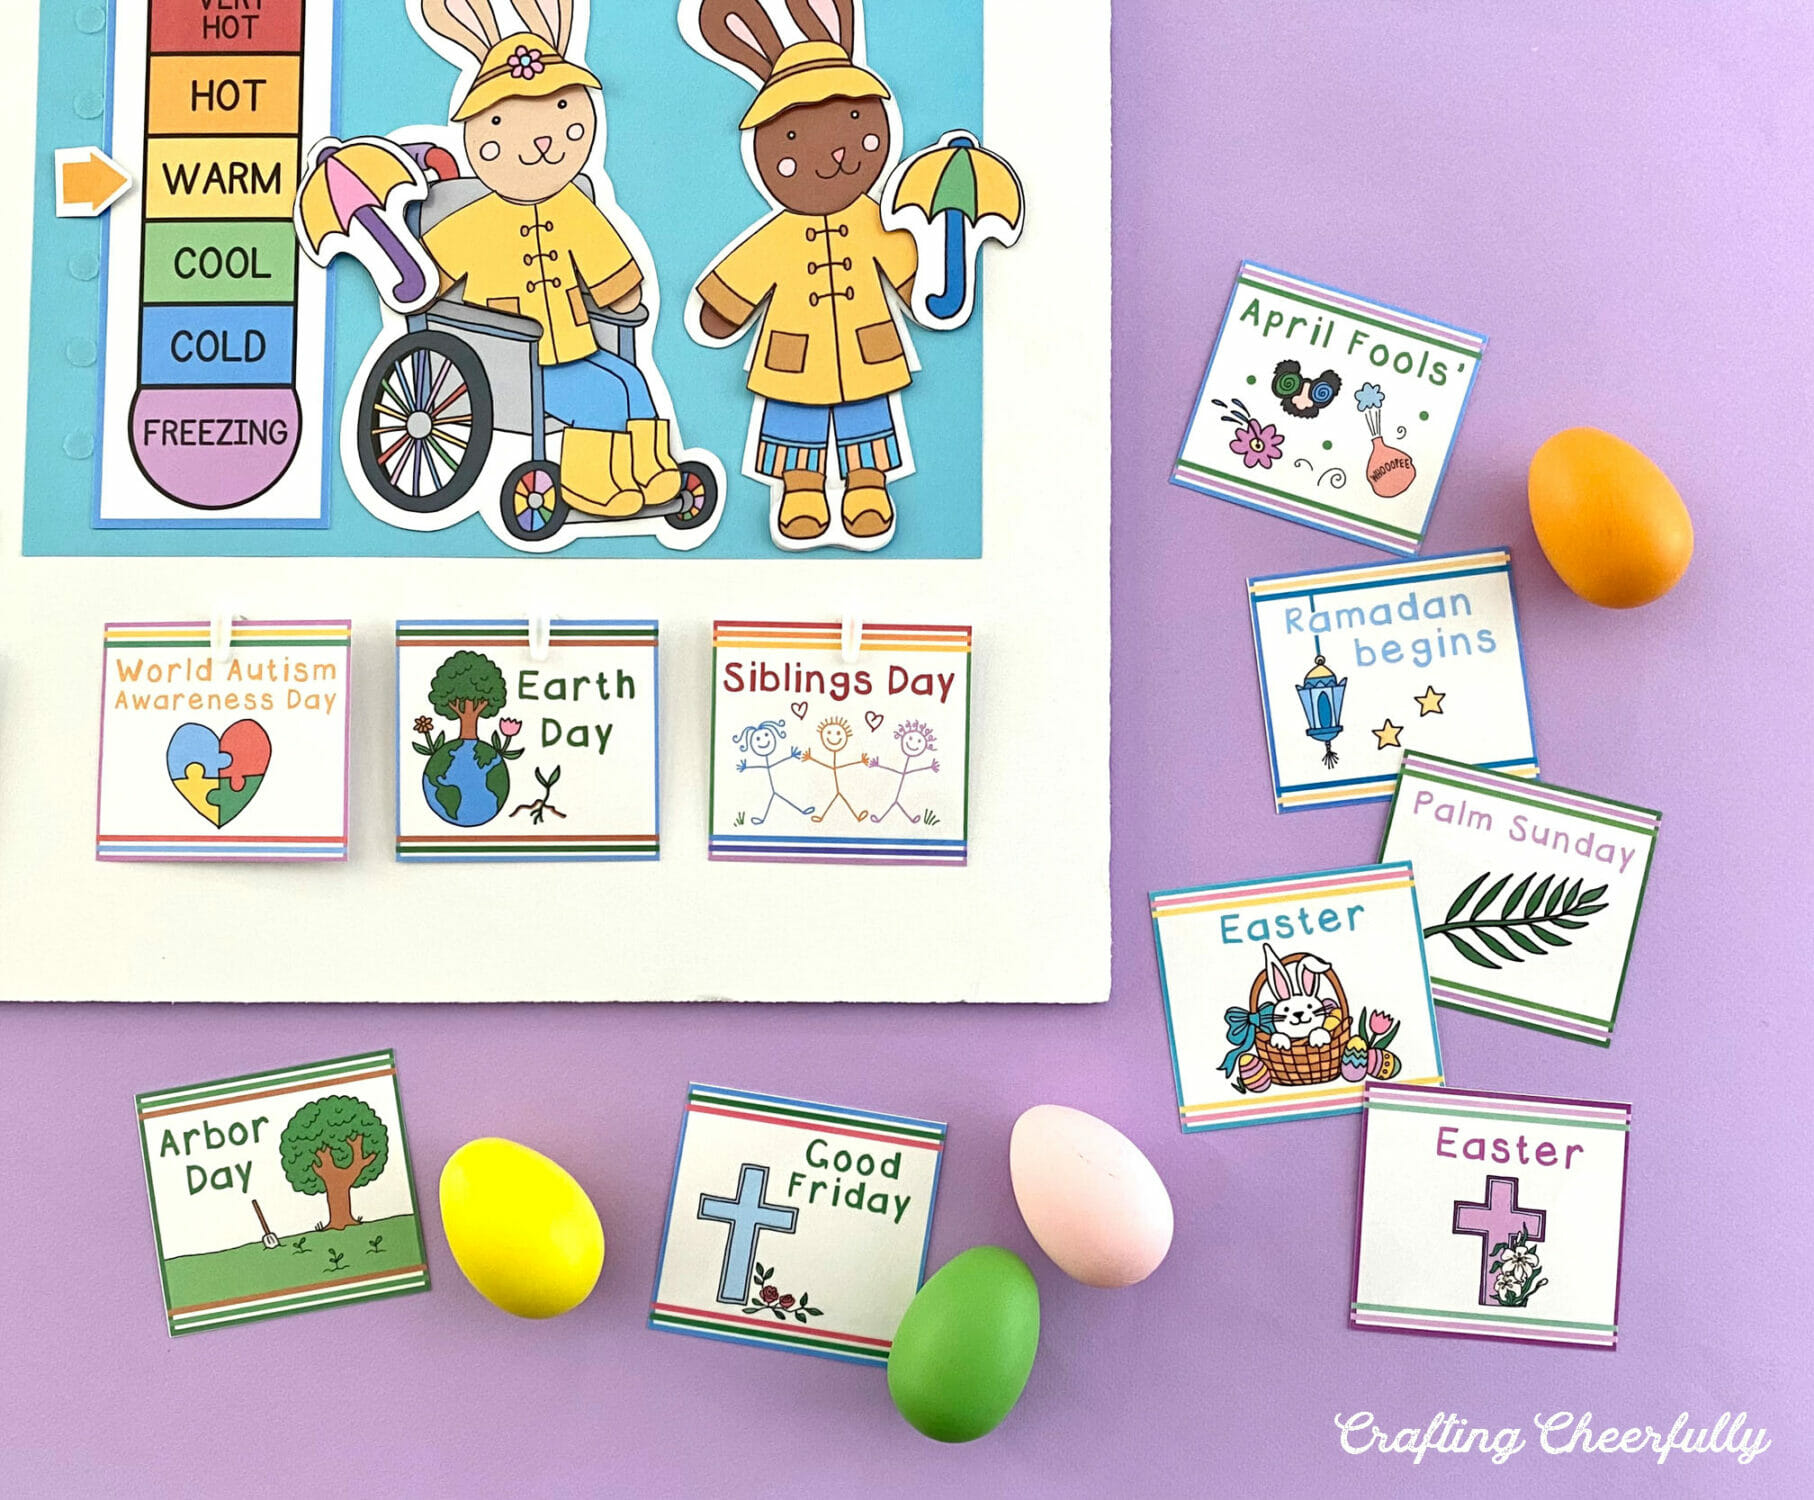 Morning board calendar for April with holiday cards and easter eggs on a purple background.